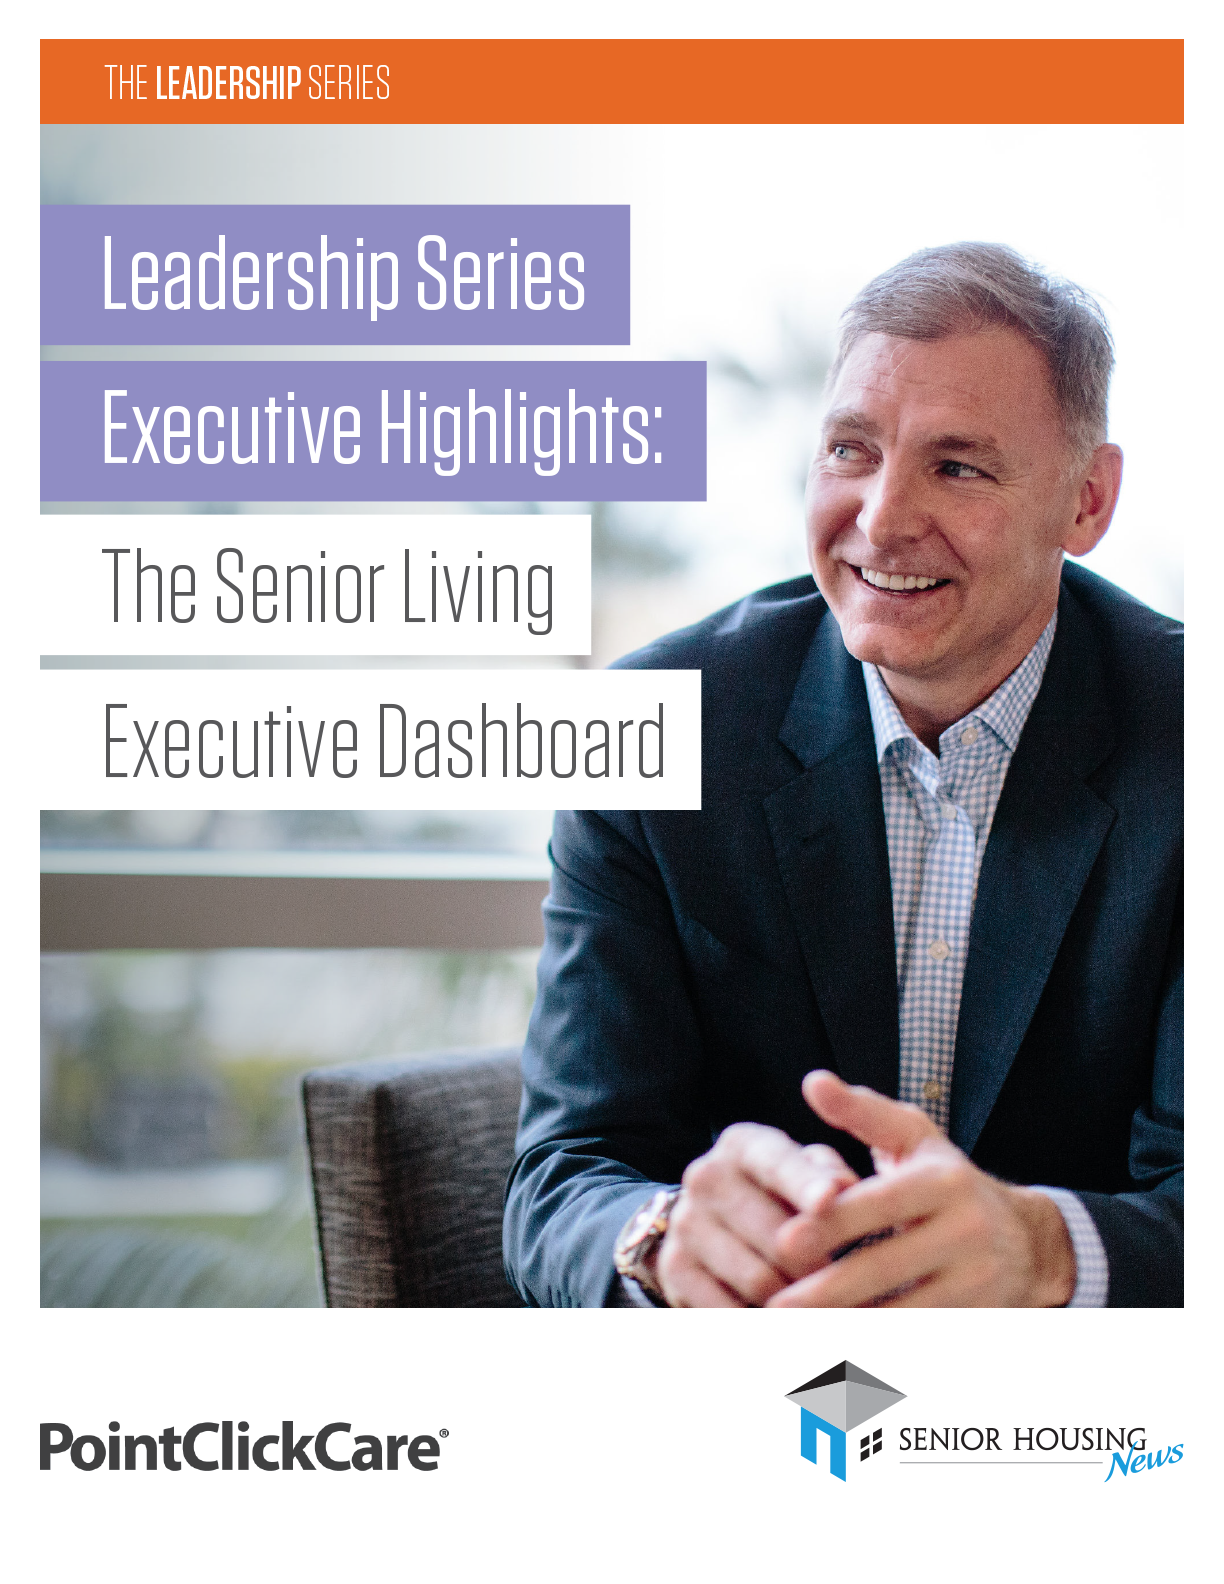 The Leadership Series Executive Highlights: The Senior Living Executive Dashboard